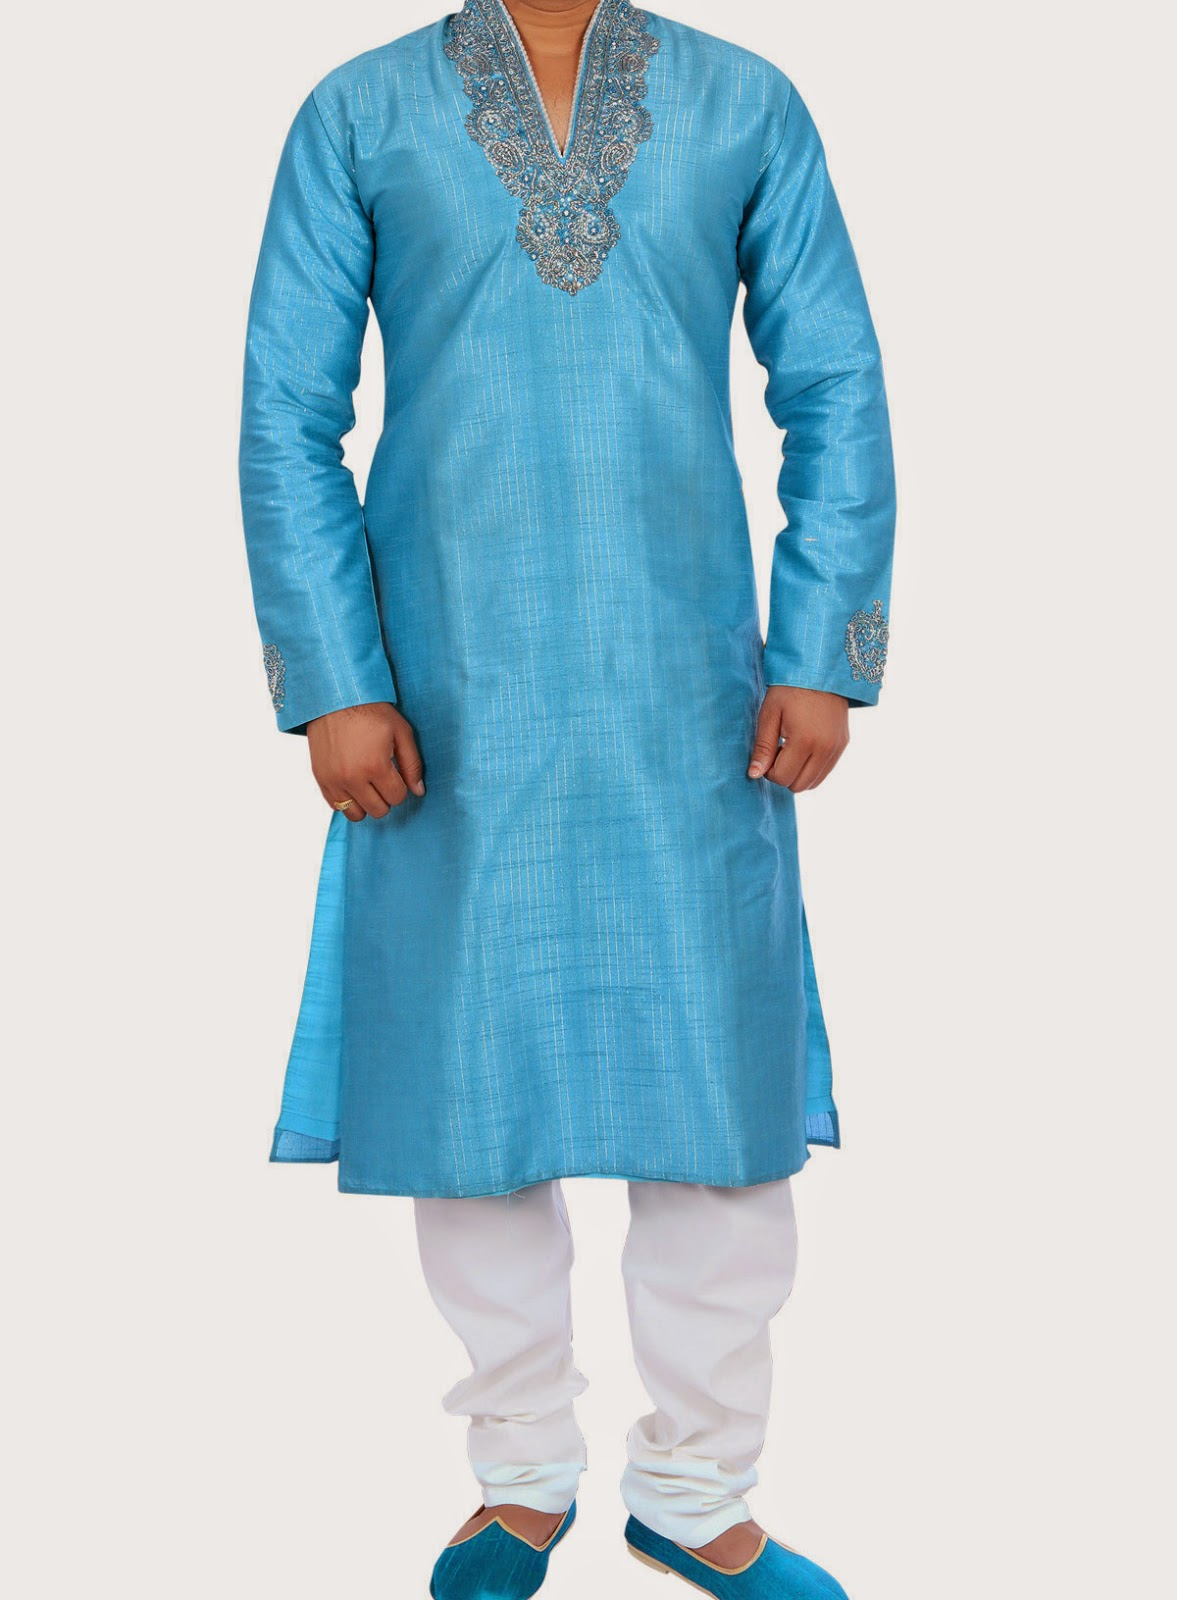 Types of Wedding Dresses for Indian Grooms